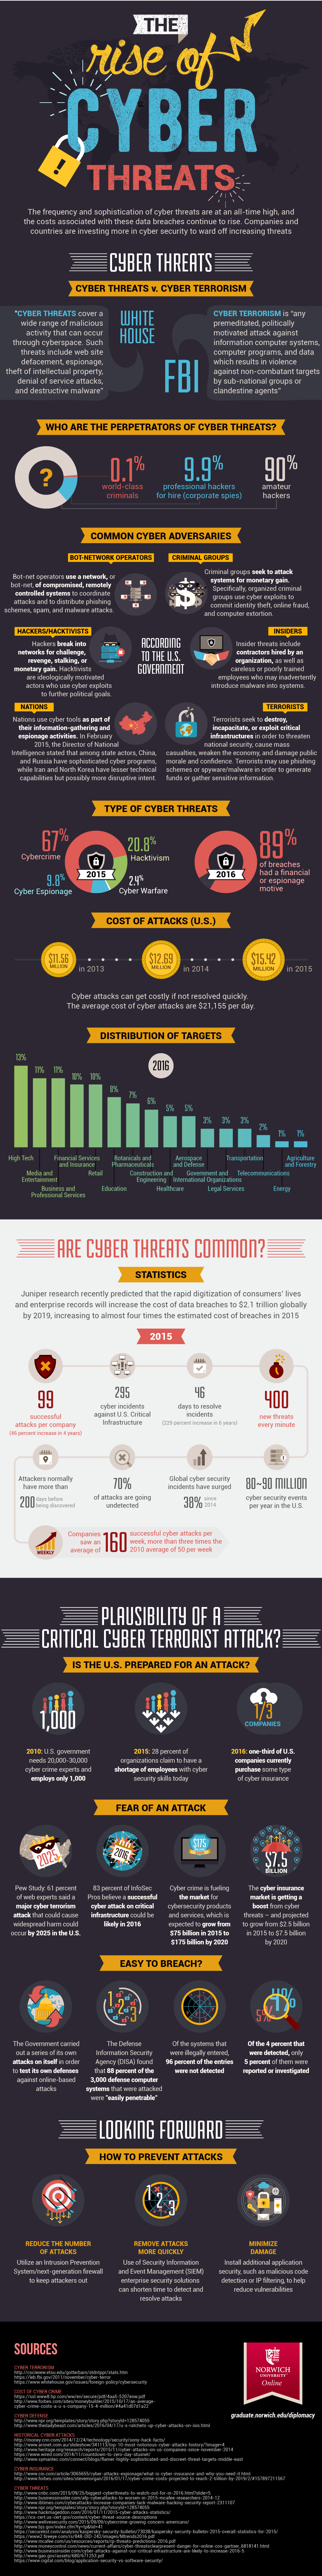 the rise of cyber threats infographic by norwich university source norwich university